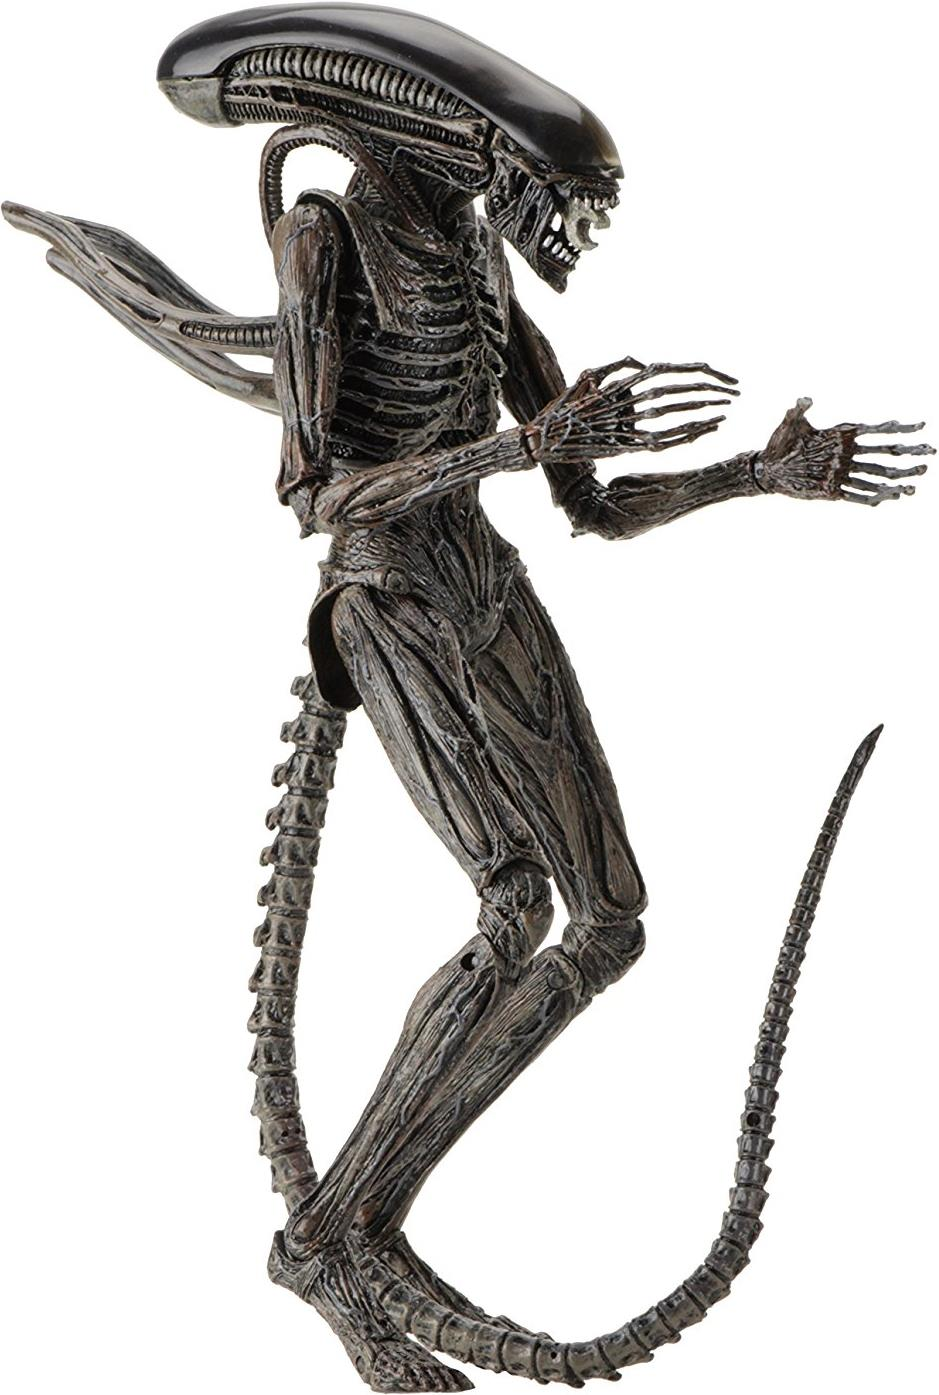 NECA Alien Covenant 10 inch Figure - Xenomorph NECA, Alien Covenant, Action Figures, 2017, scifi, movie